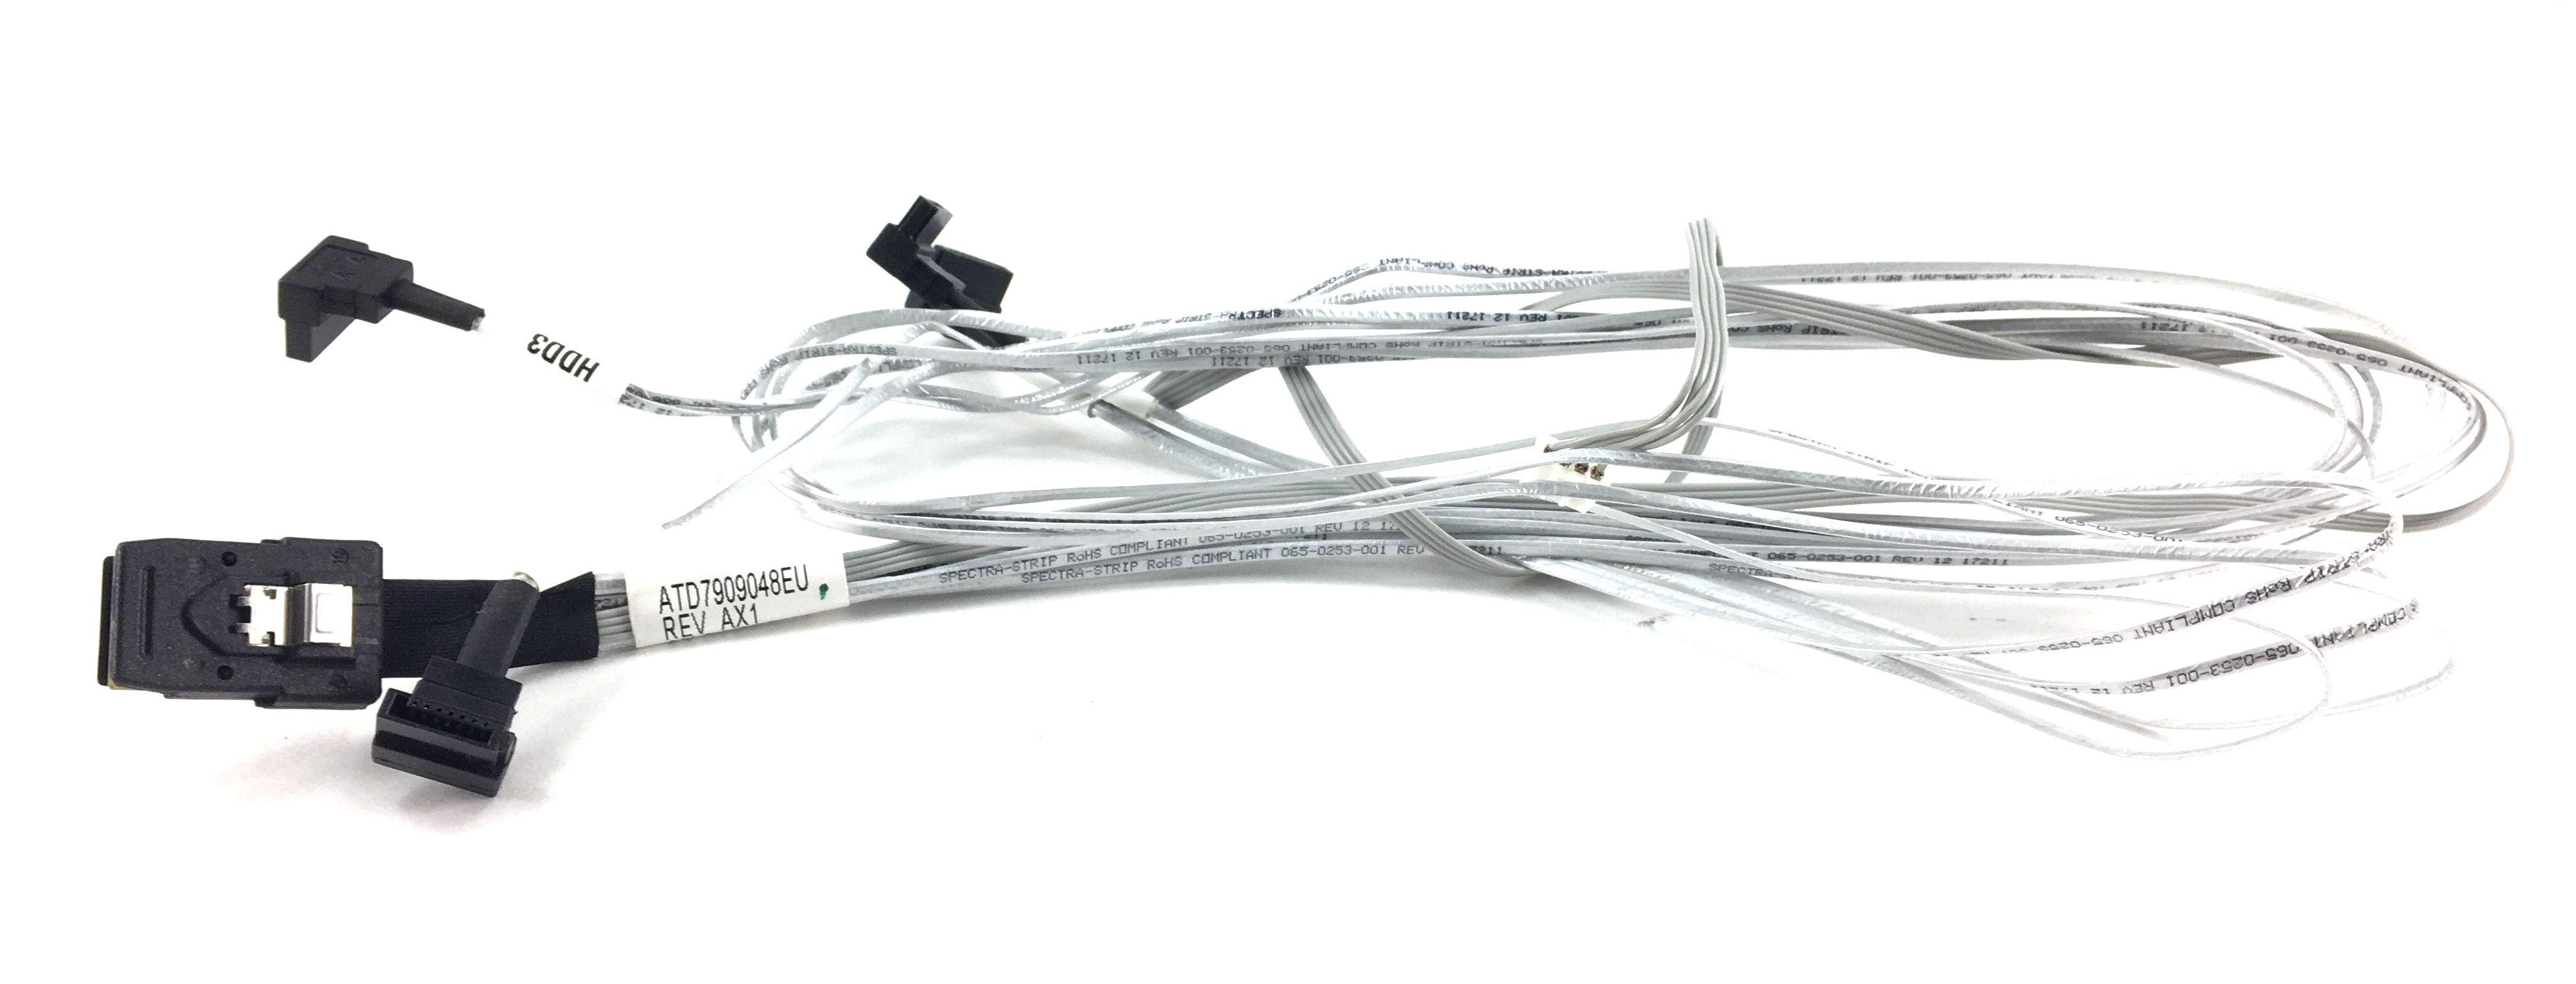 Breakout Cable With 90 Degree SATA For C200 M2 (ATD7909048EU)